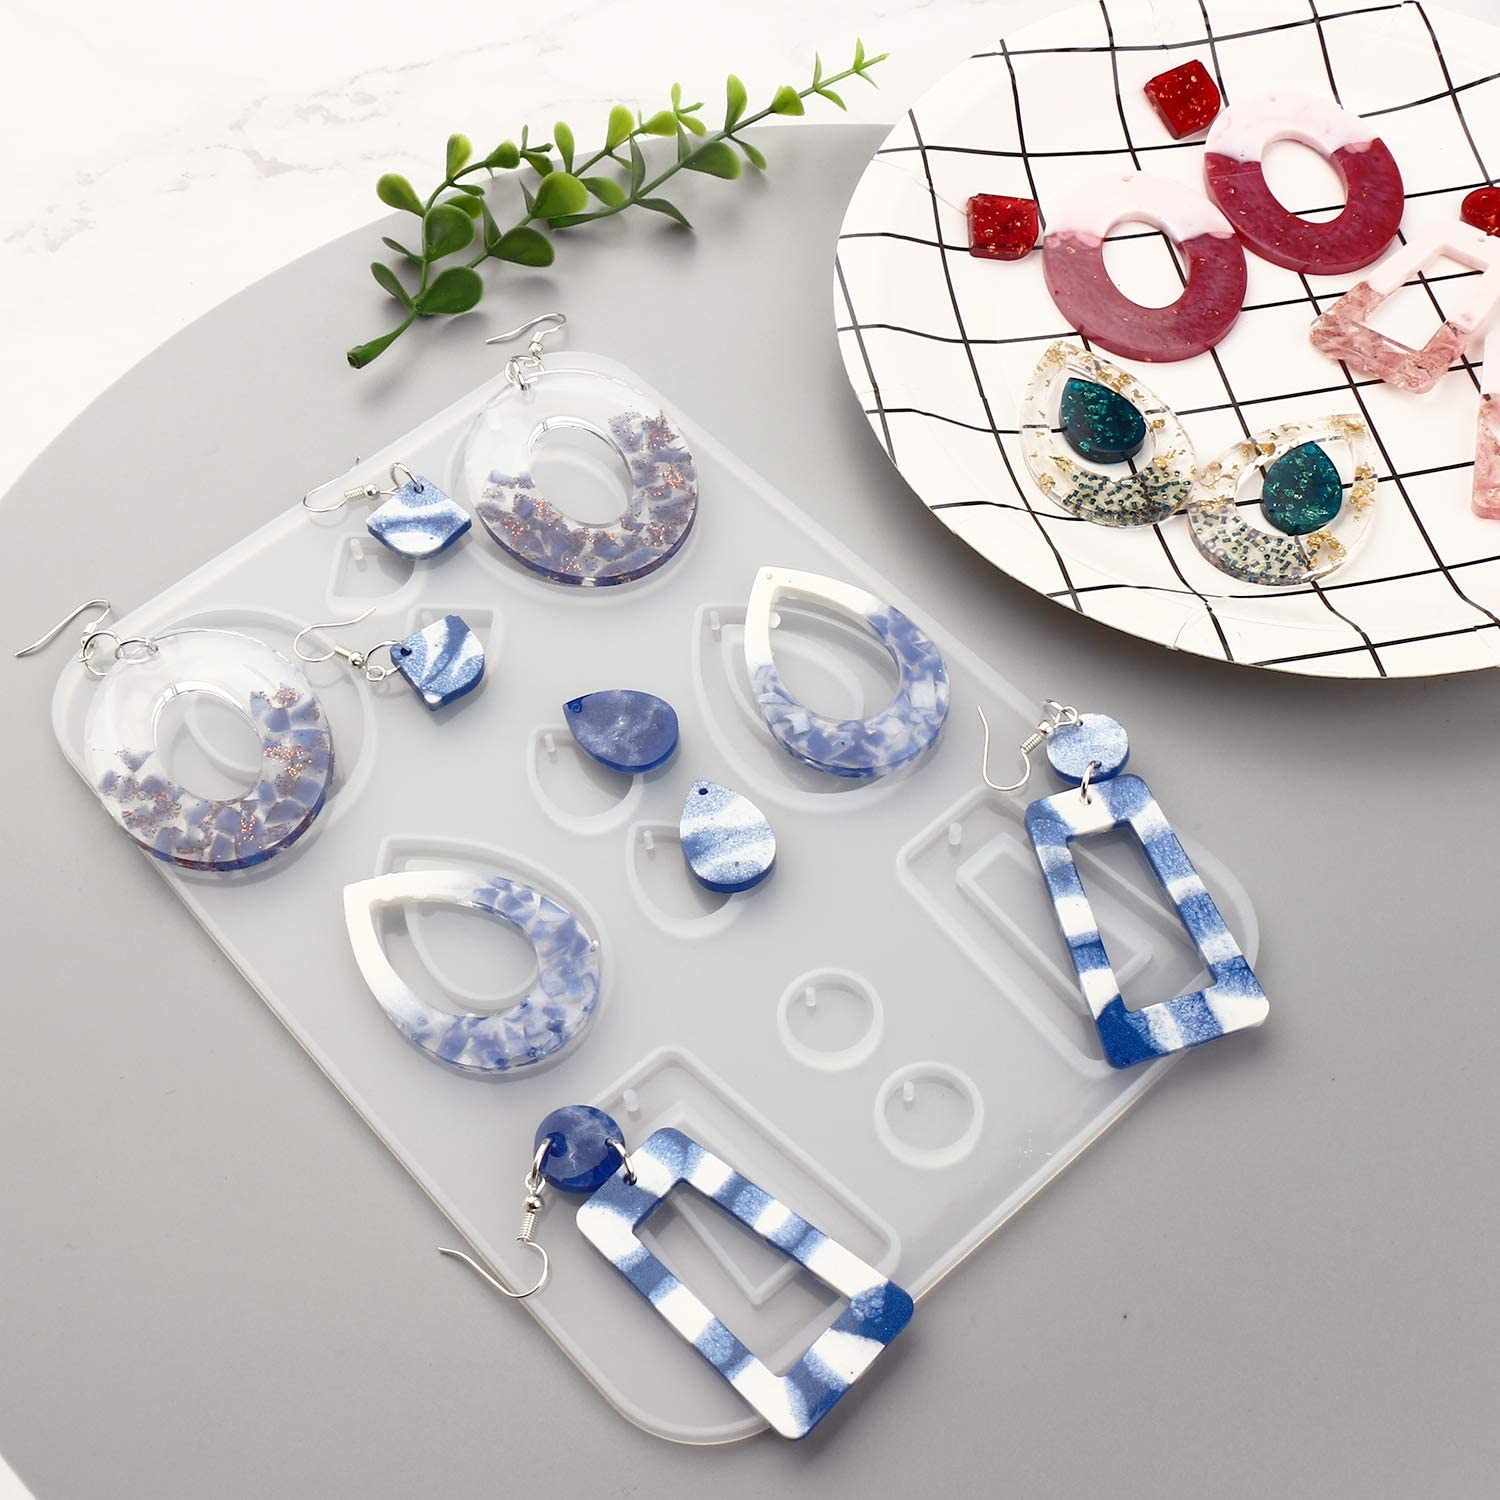 Fashion Jewelry Resin Silicone Molds for Women Girls Bohemian Drop Dangle Resin Earring Mold LETS RESIN 3PCS Earring Epoxy Resin Molds